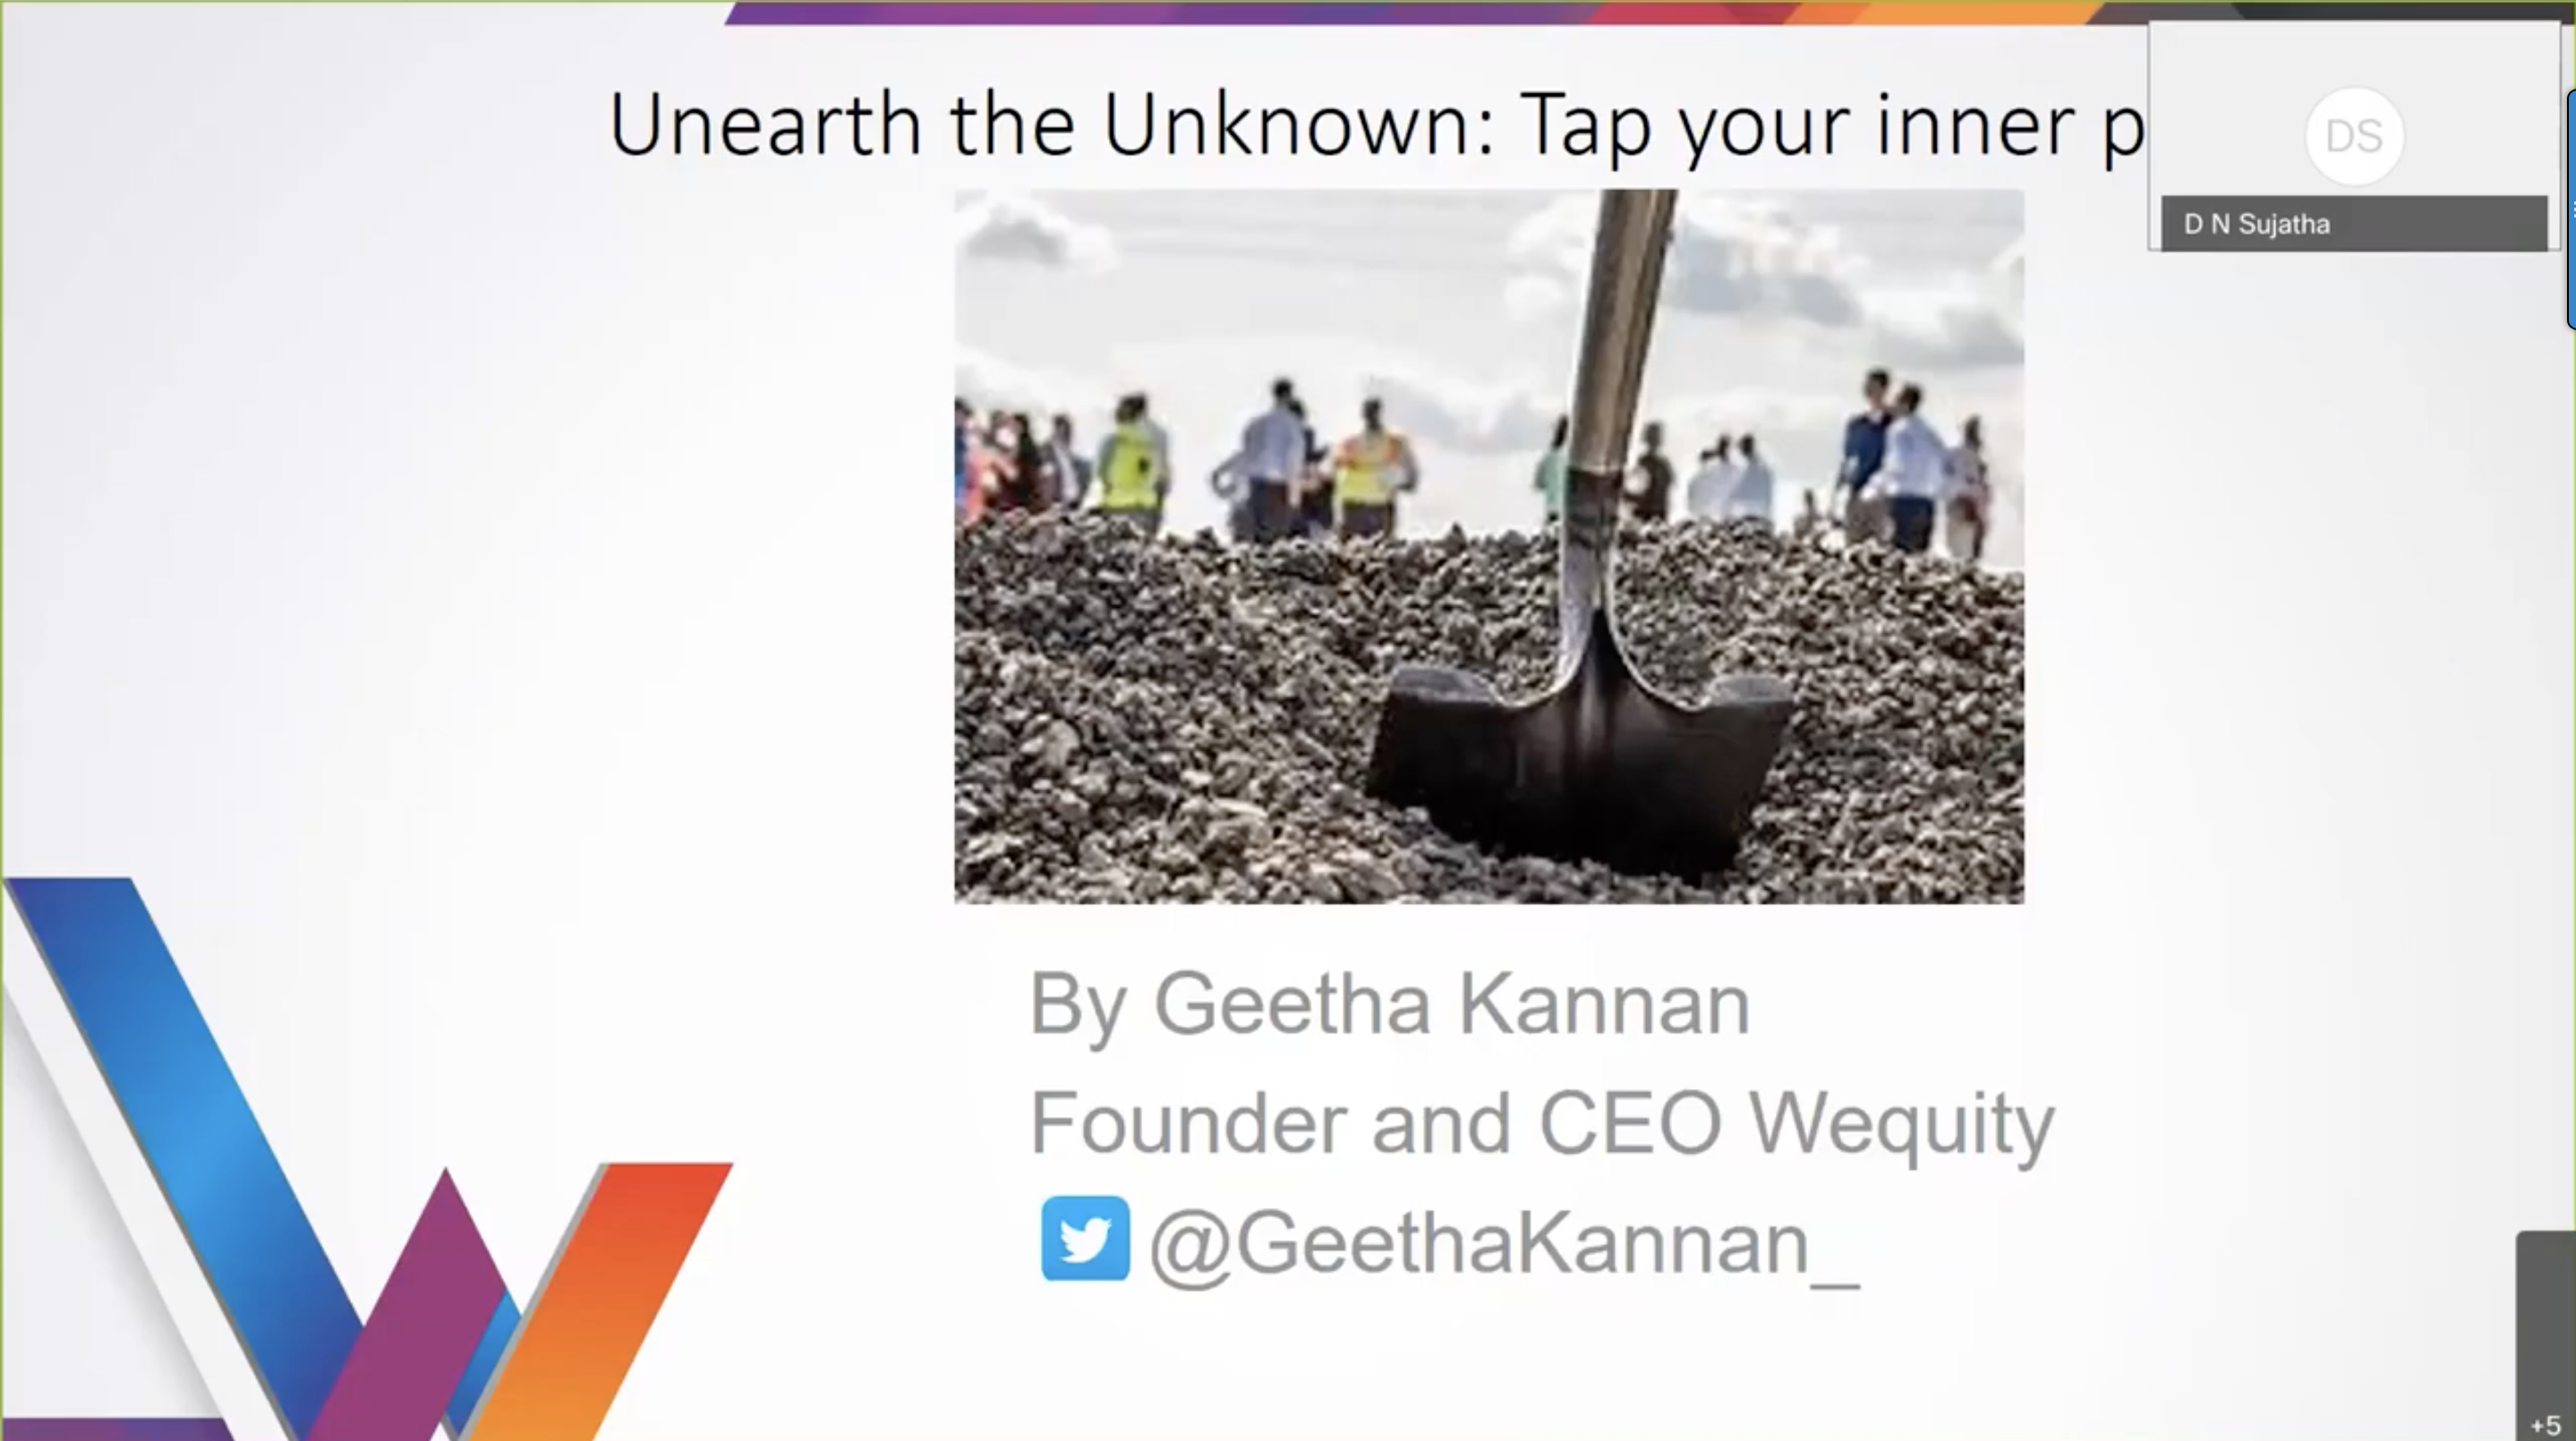 Unearth the Unknown: Tapping Your Inner Potential